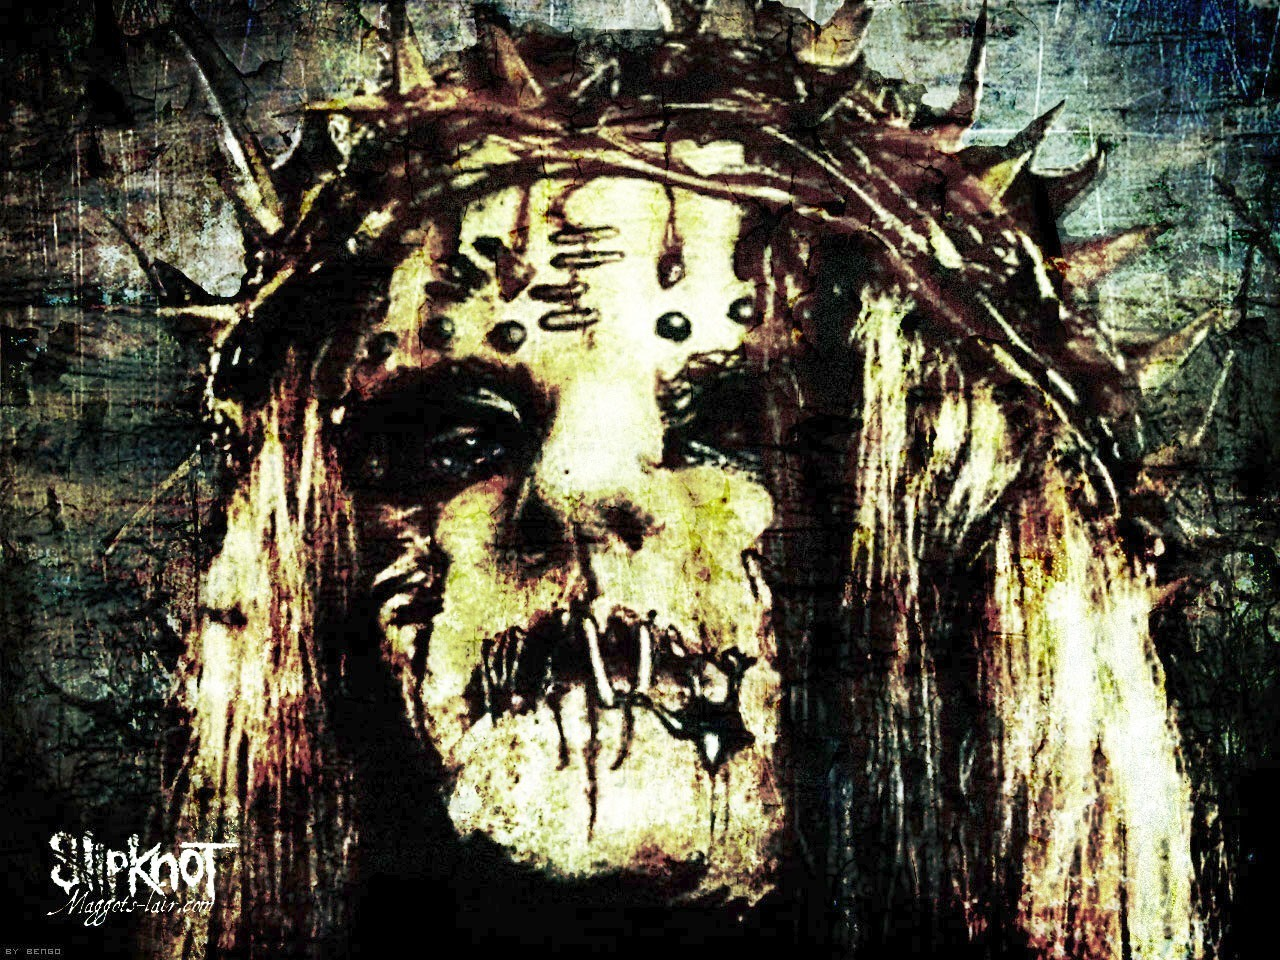 Joey Jordison Slipknot Masks Wallpaper